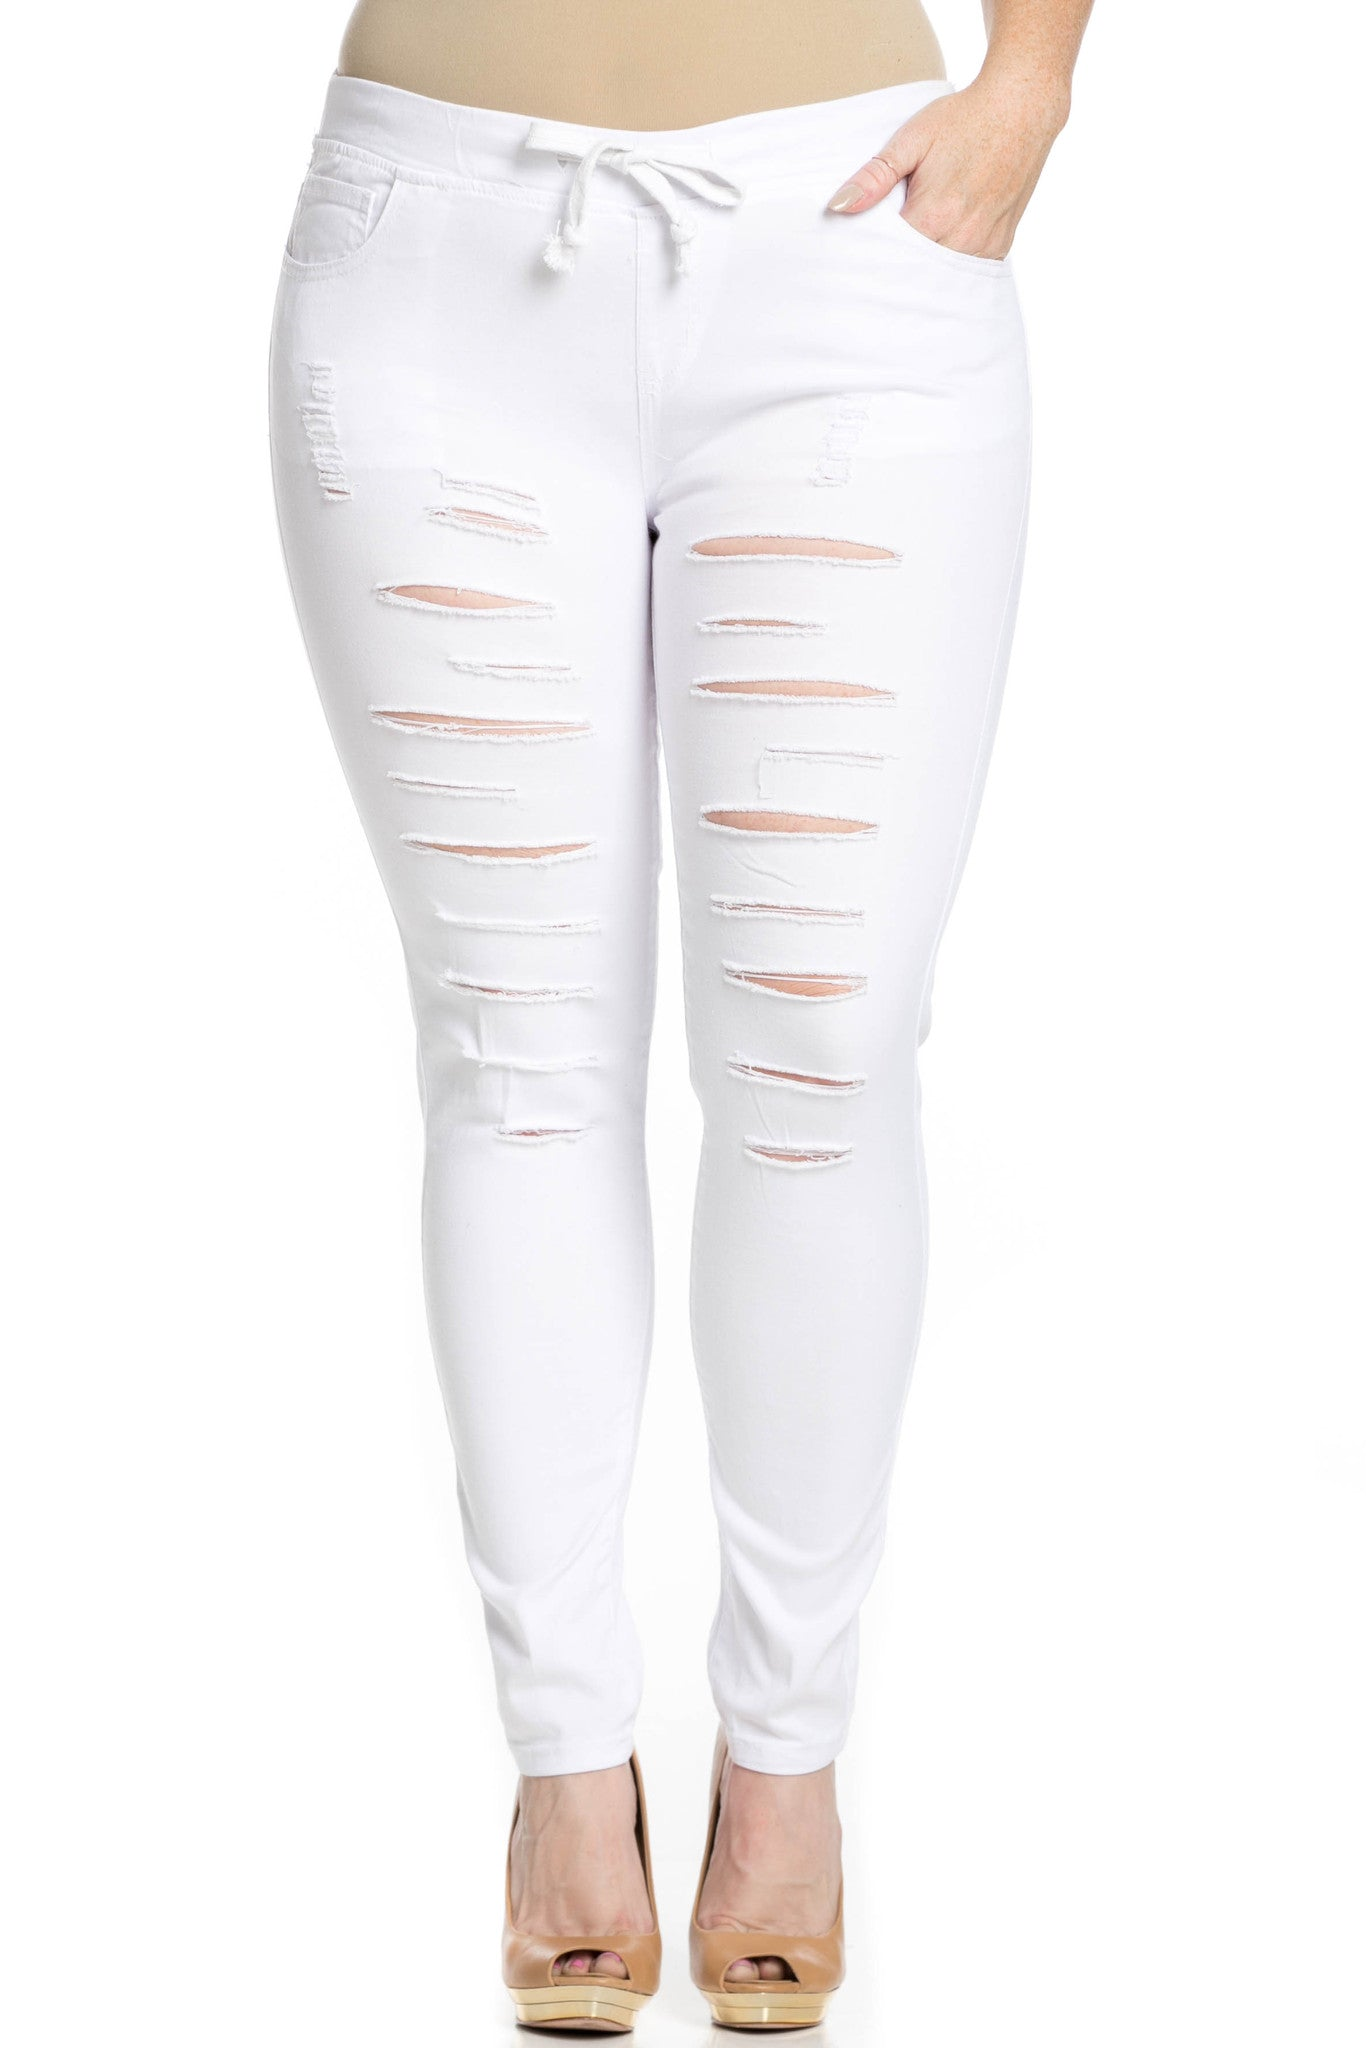 Distressed Skinny White Jogger Jeans - Pants - My Yuccie - 14